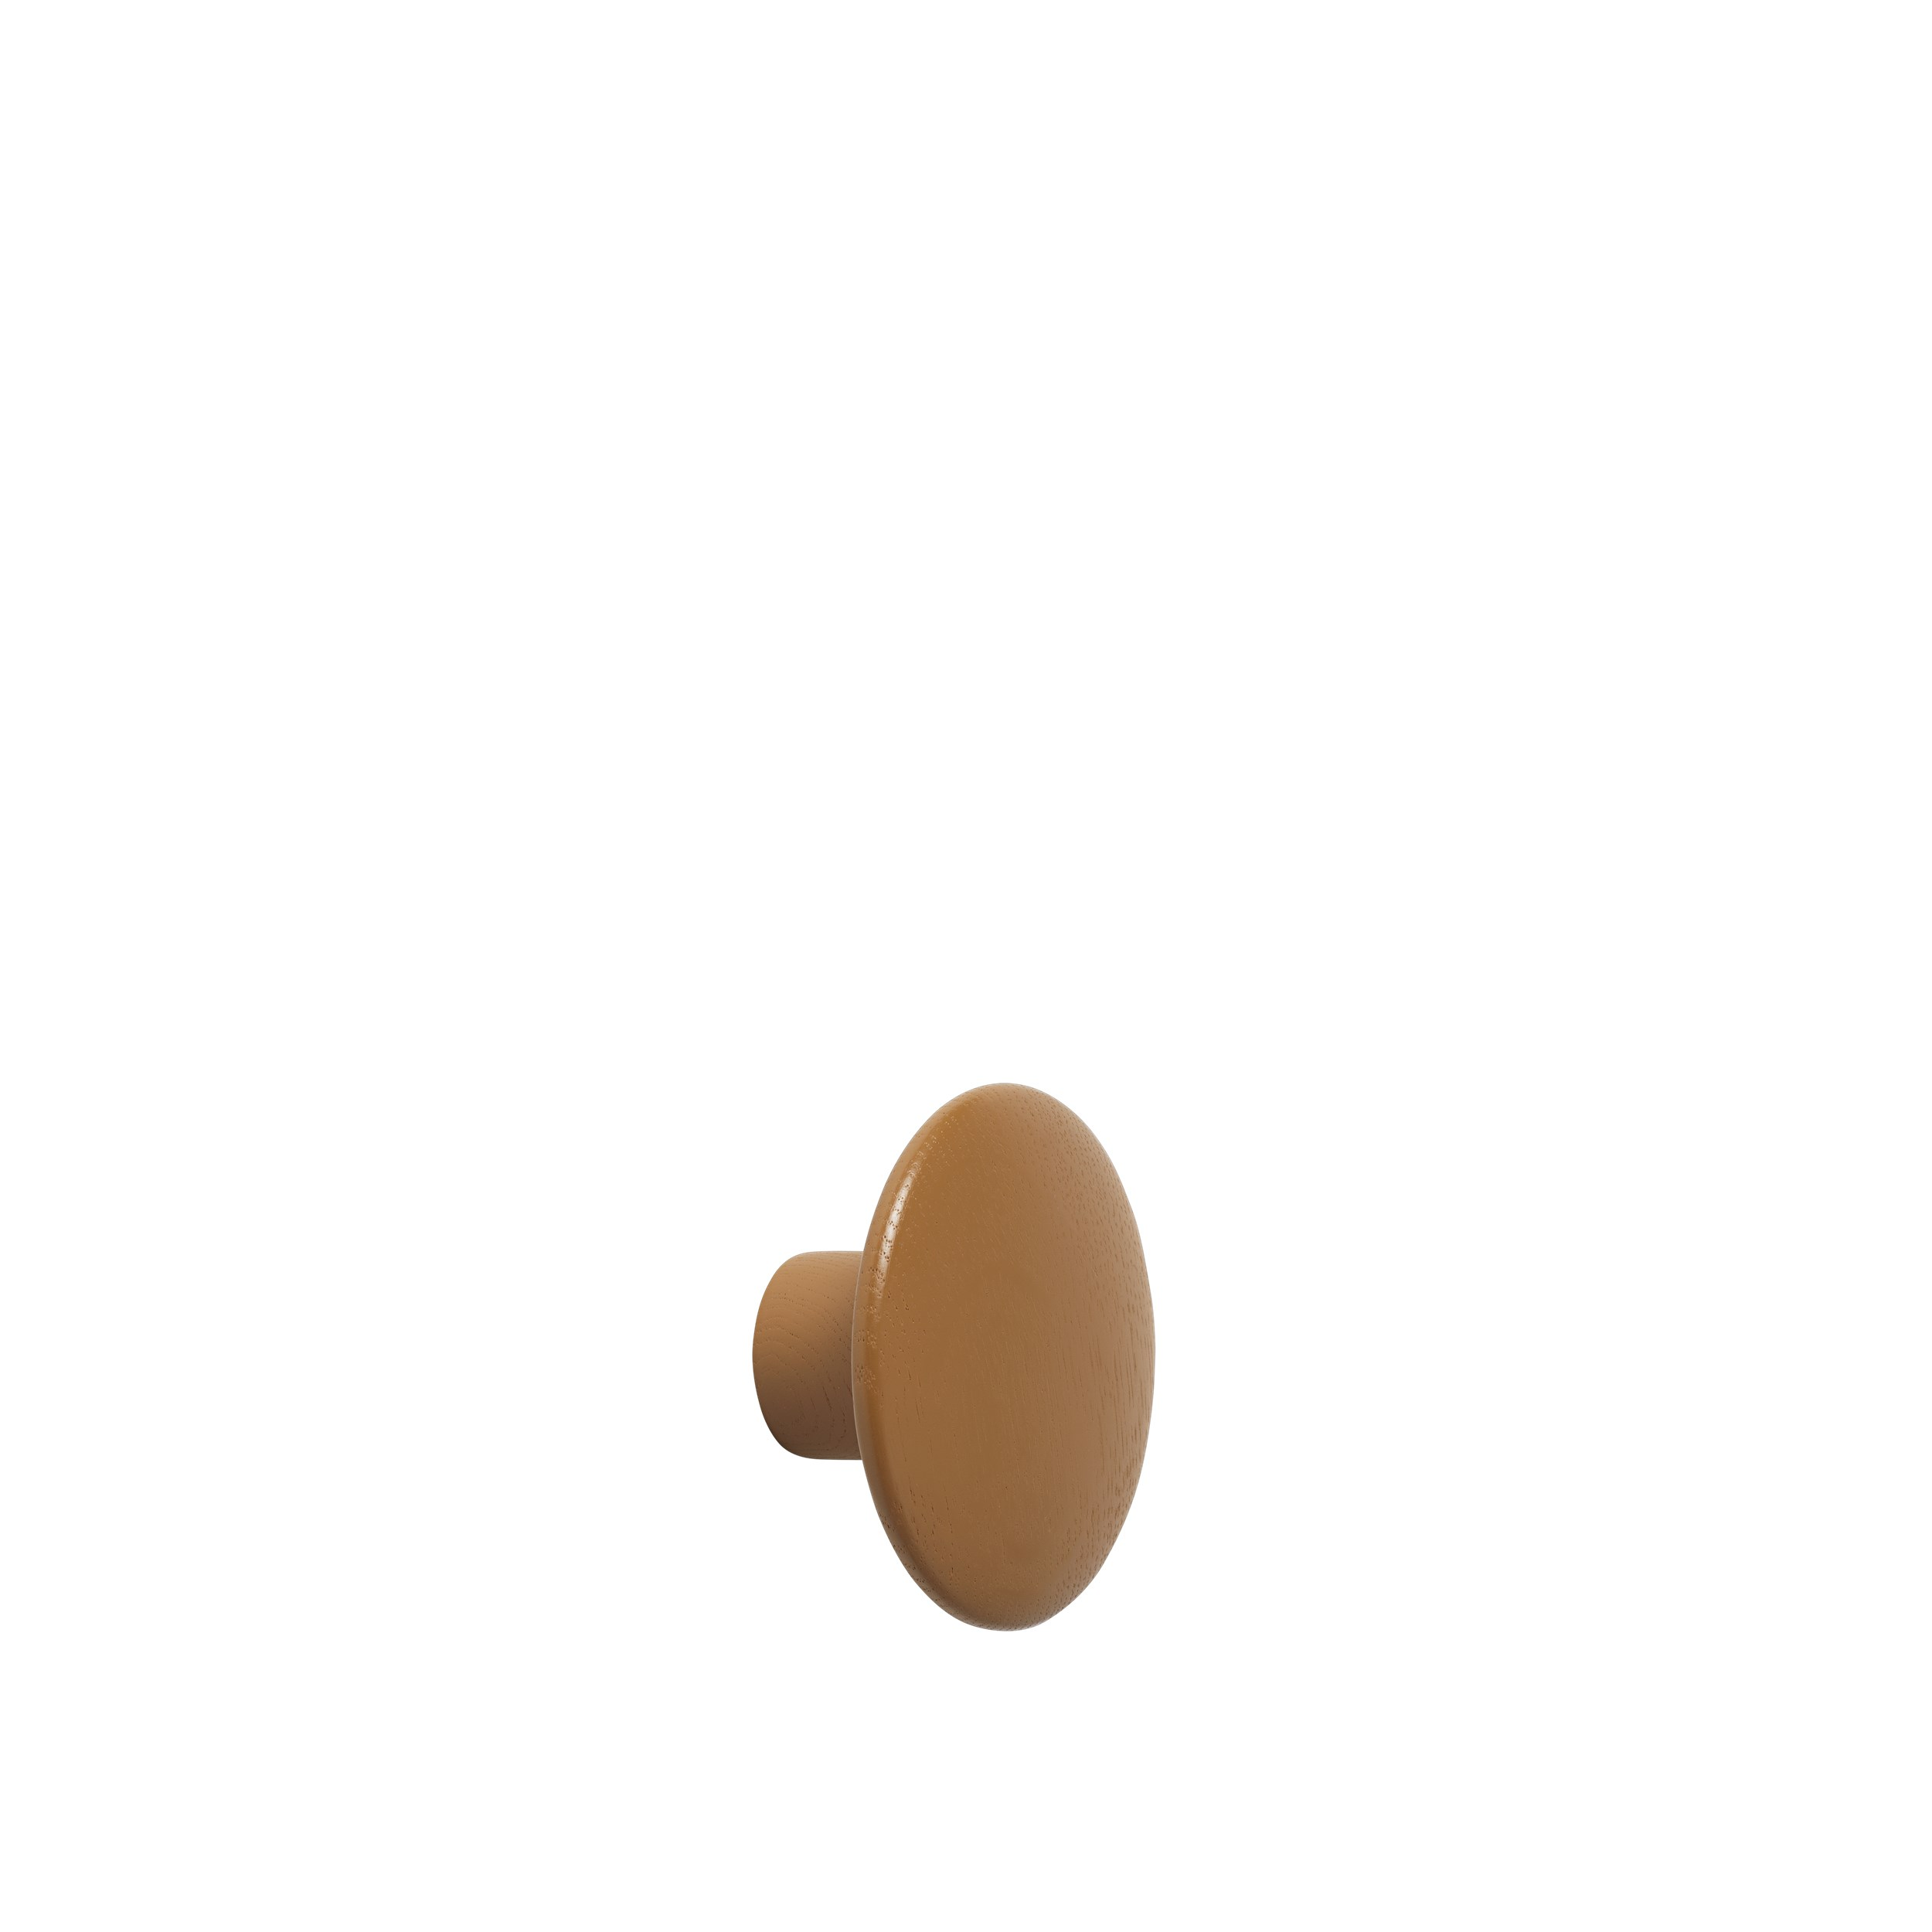 The Dots Muuto Clay Brown Small